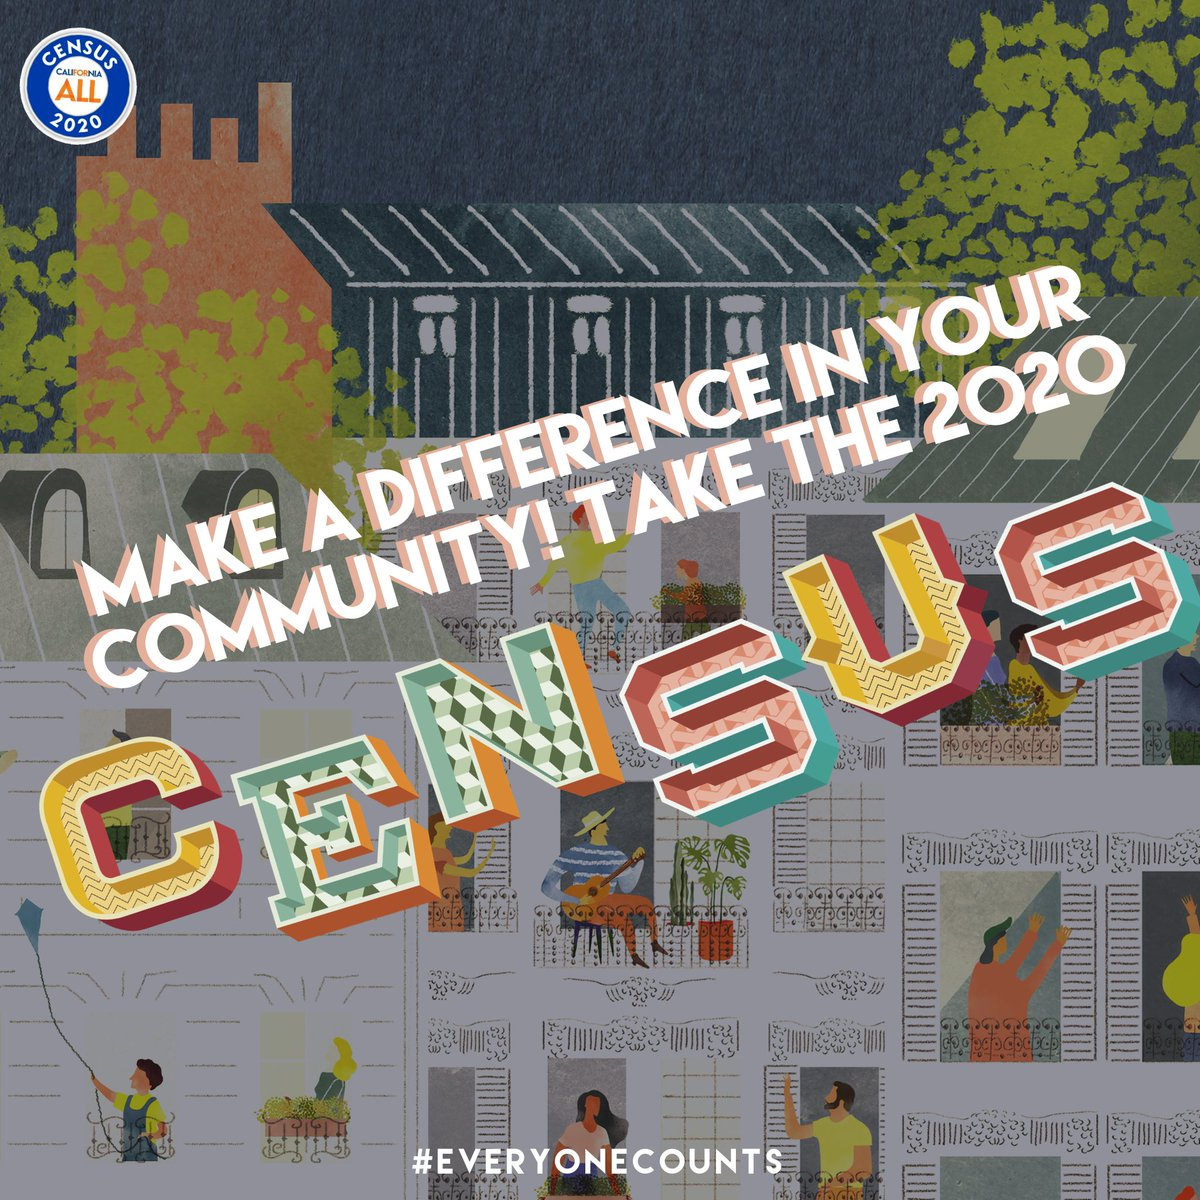 Time is running out to take the Census and make a difference in your community! Complete your Census online at https://t.co/vx6bKmT2hz, by phone 844-330-2020, or by mail, today! #EveryoneCounts #CaliforniaForAll #2020Census https://t.co/g4HnZ1eVsN